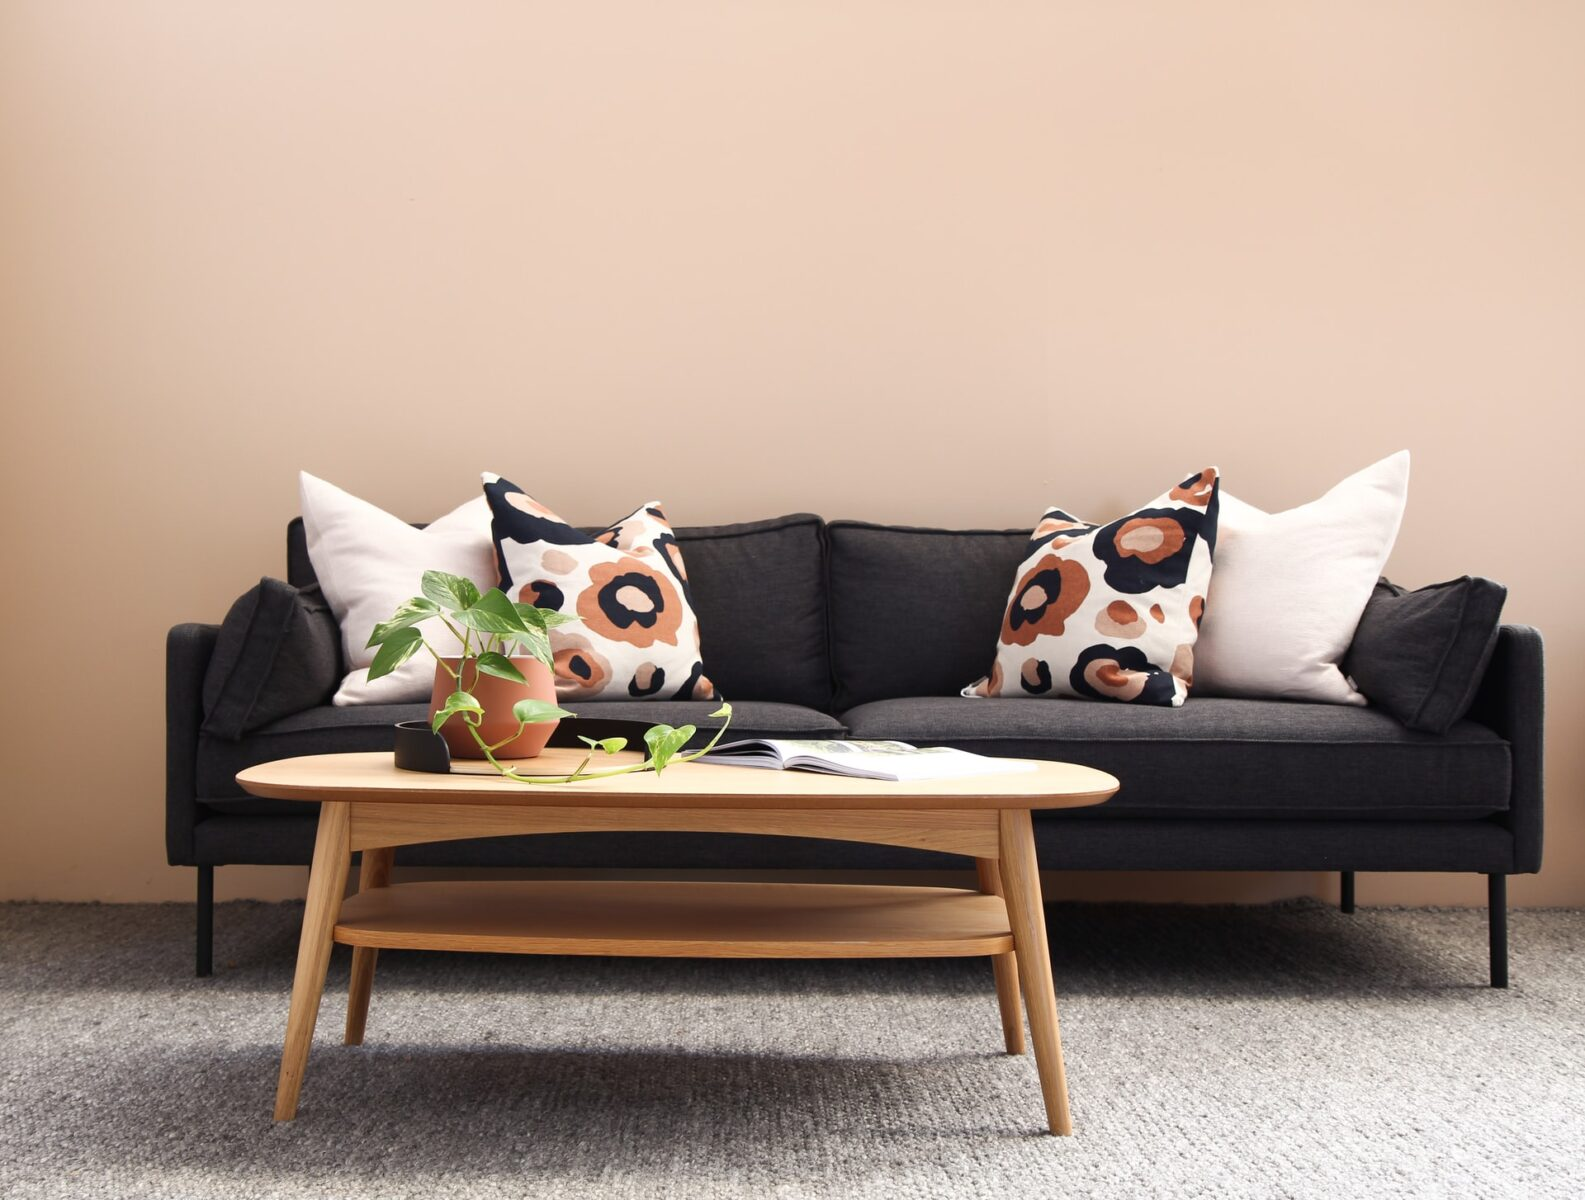 How to Decorate a Round Coffee Table